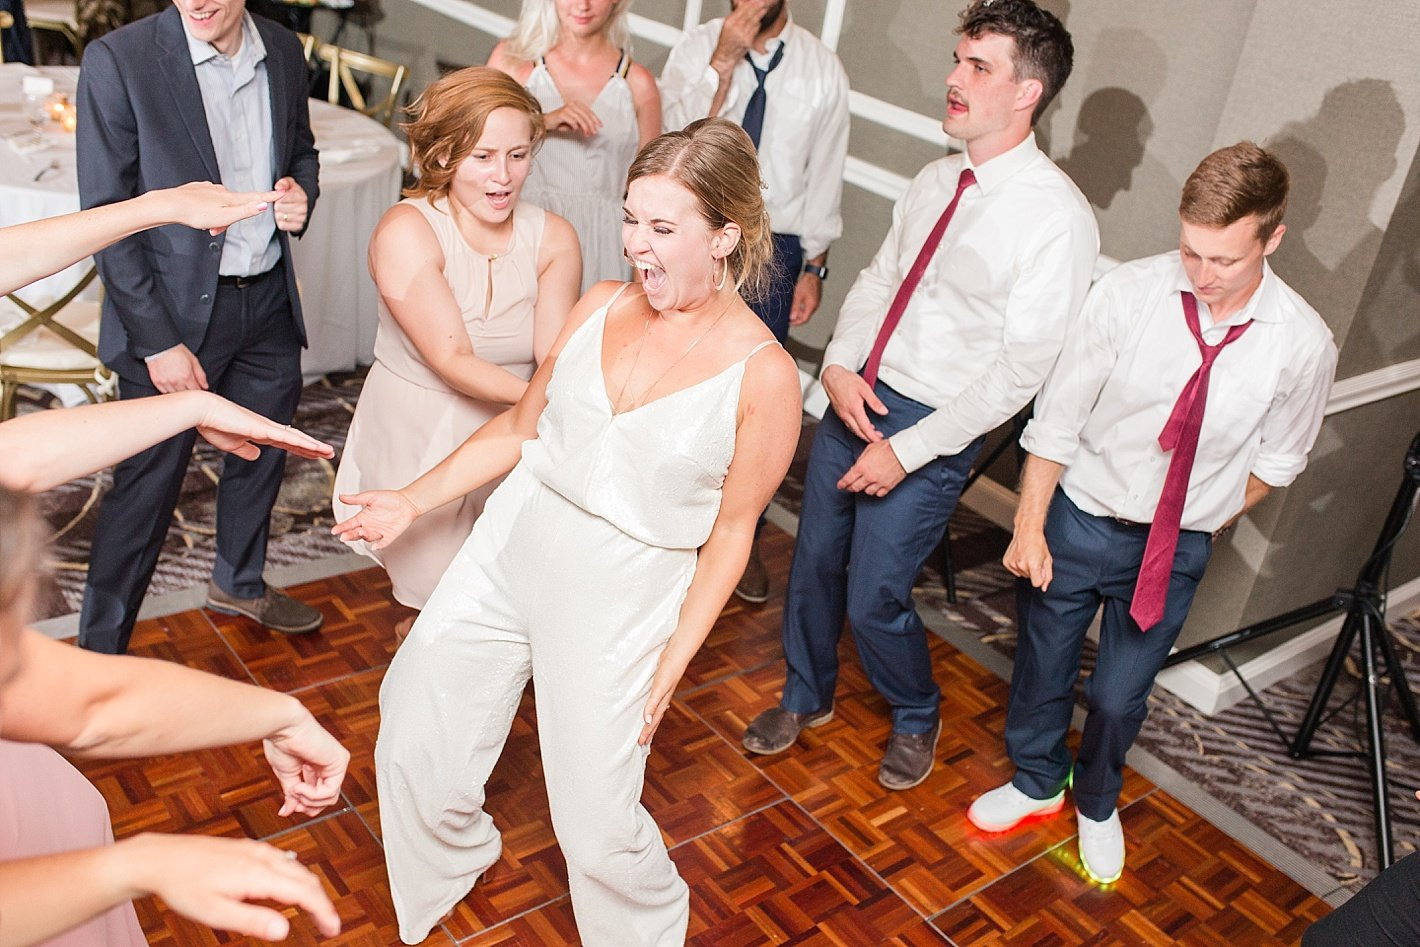 Eagles Nest Country Club wedding reception, Arpasi Photography dancing reception photos, bride white jumpsuit